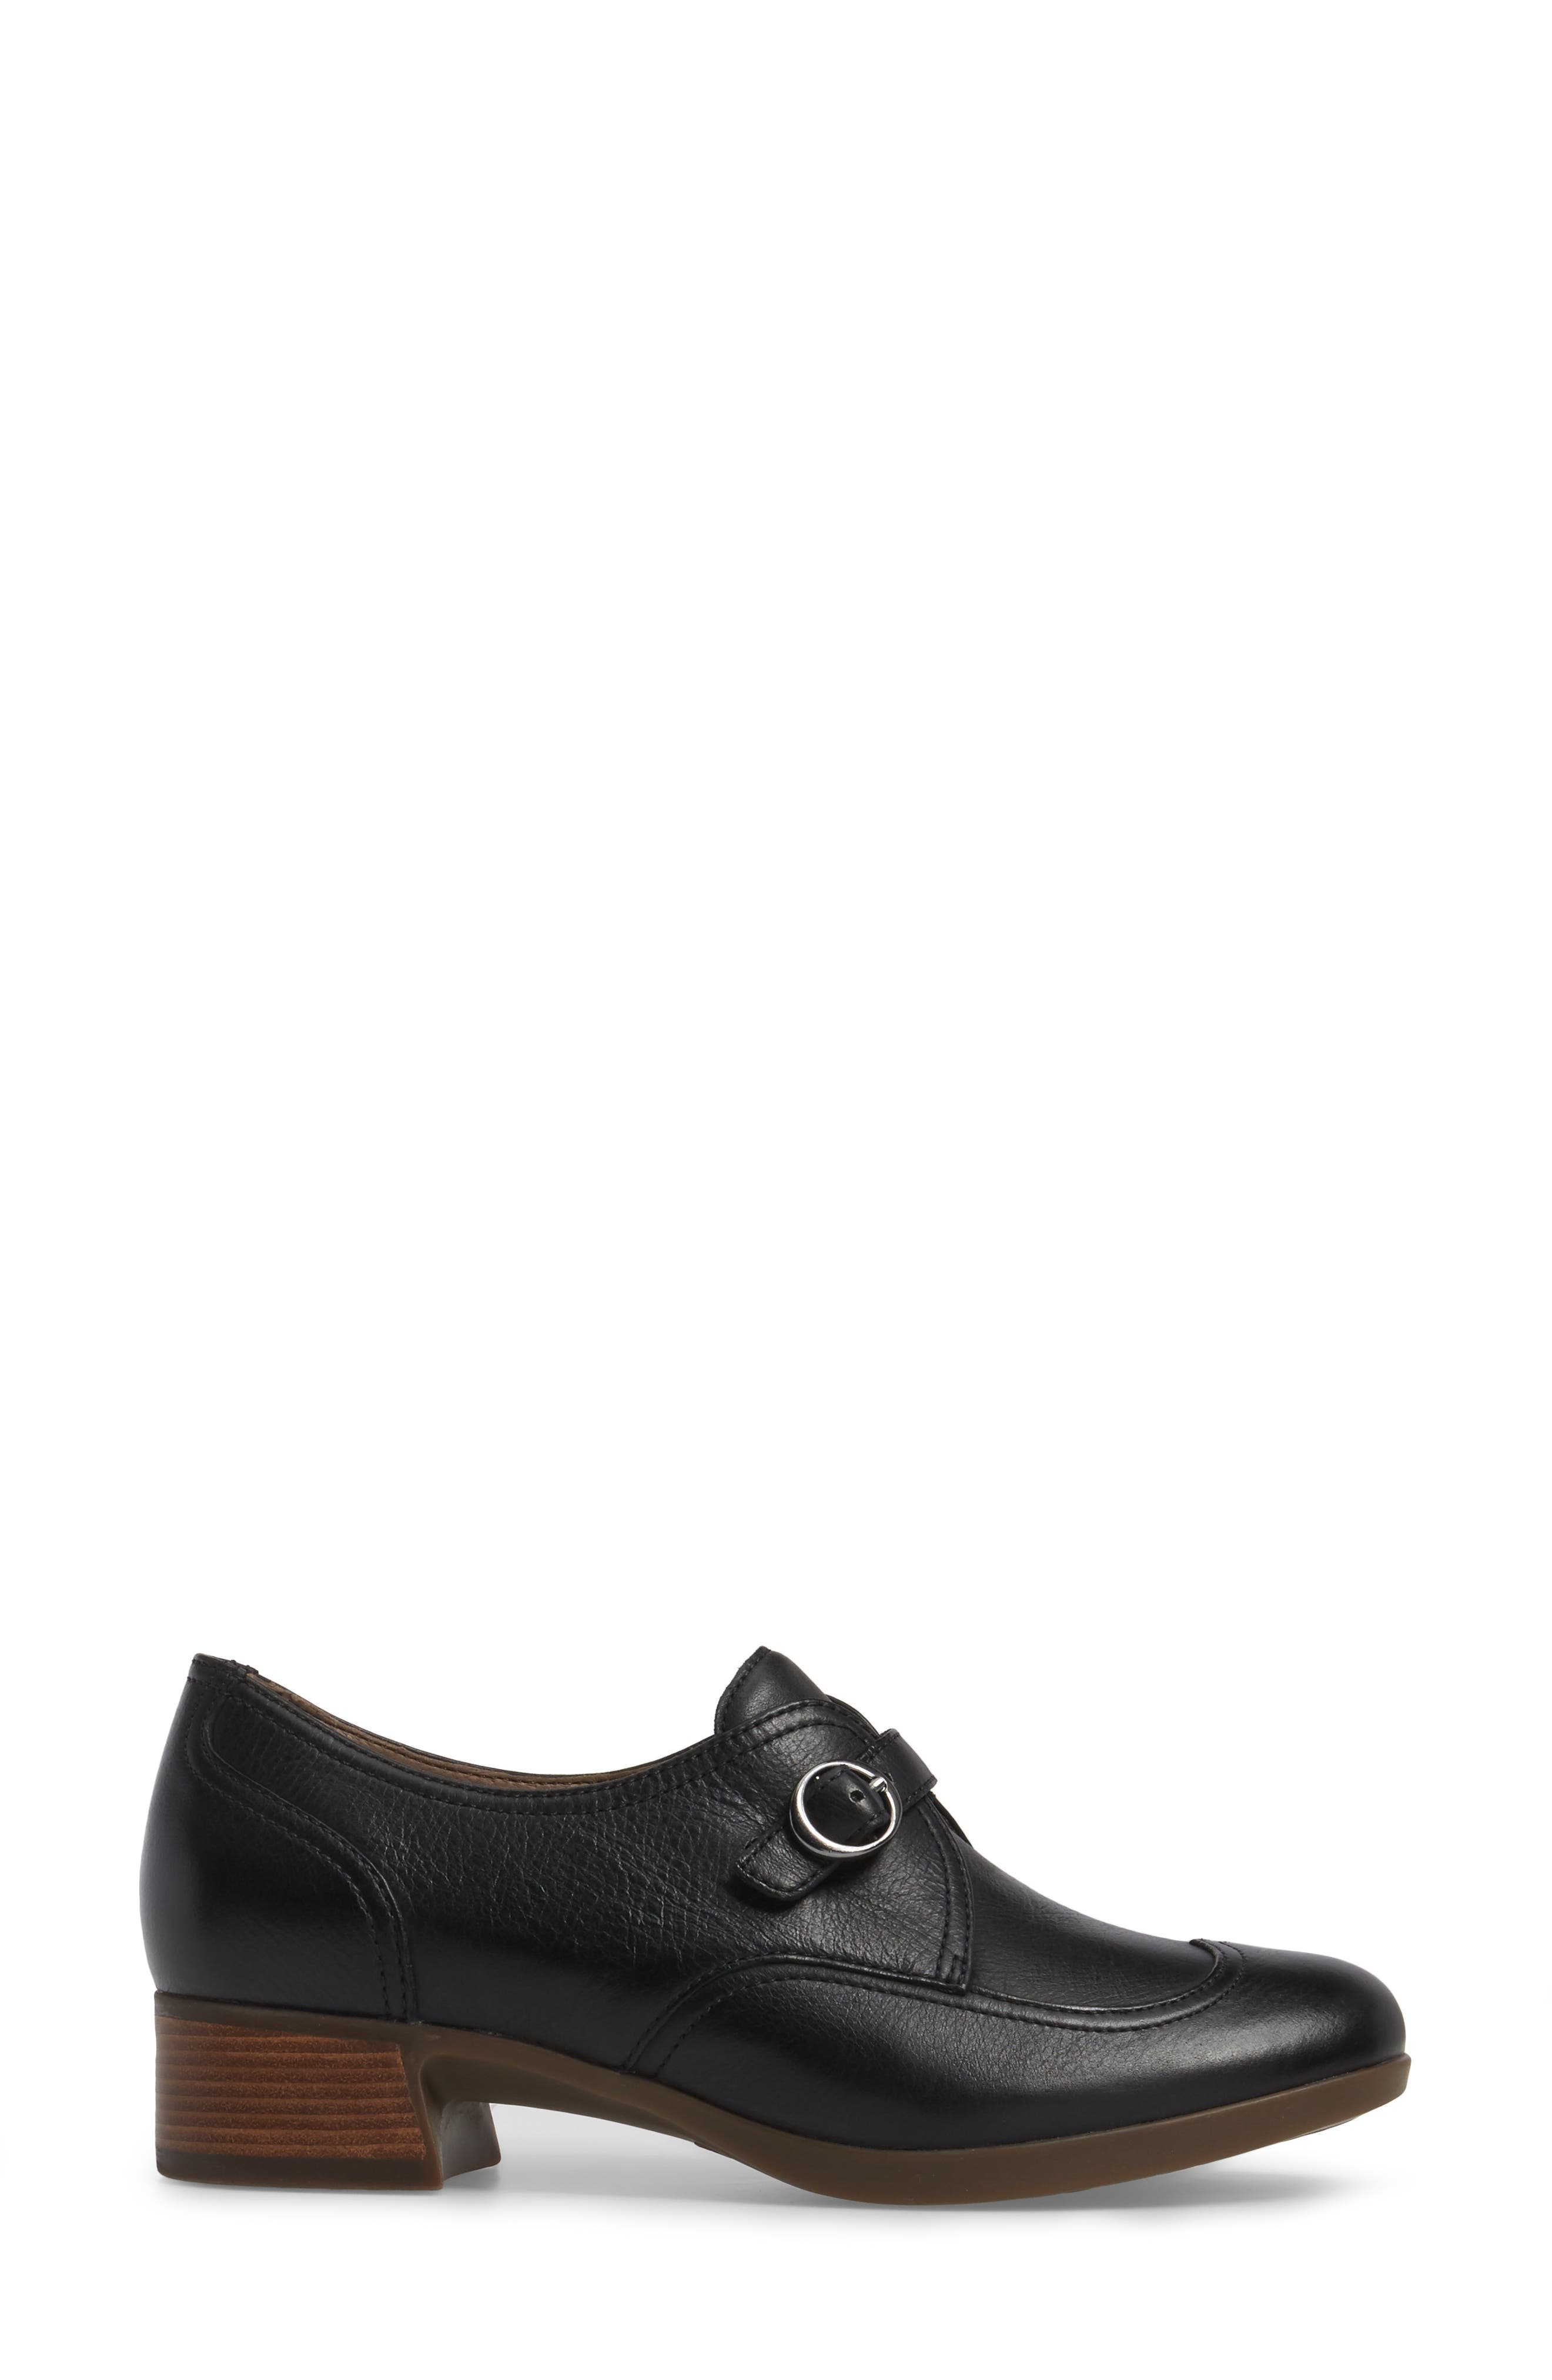 Alternate Image 3  - Dansko Livie Wingtip Oxford (Women)